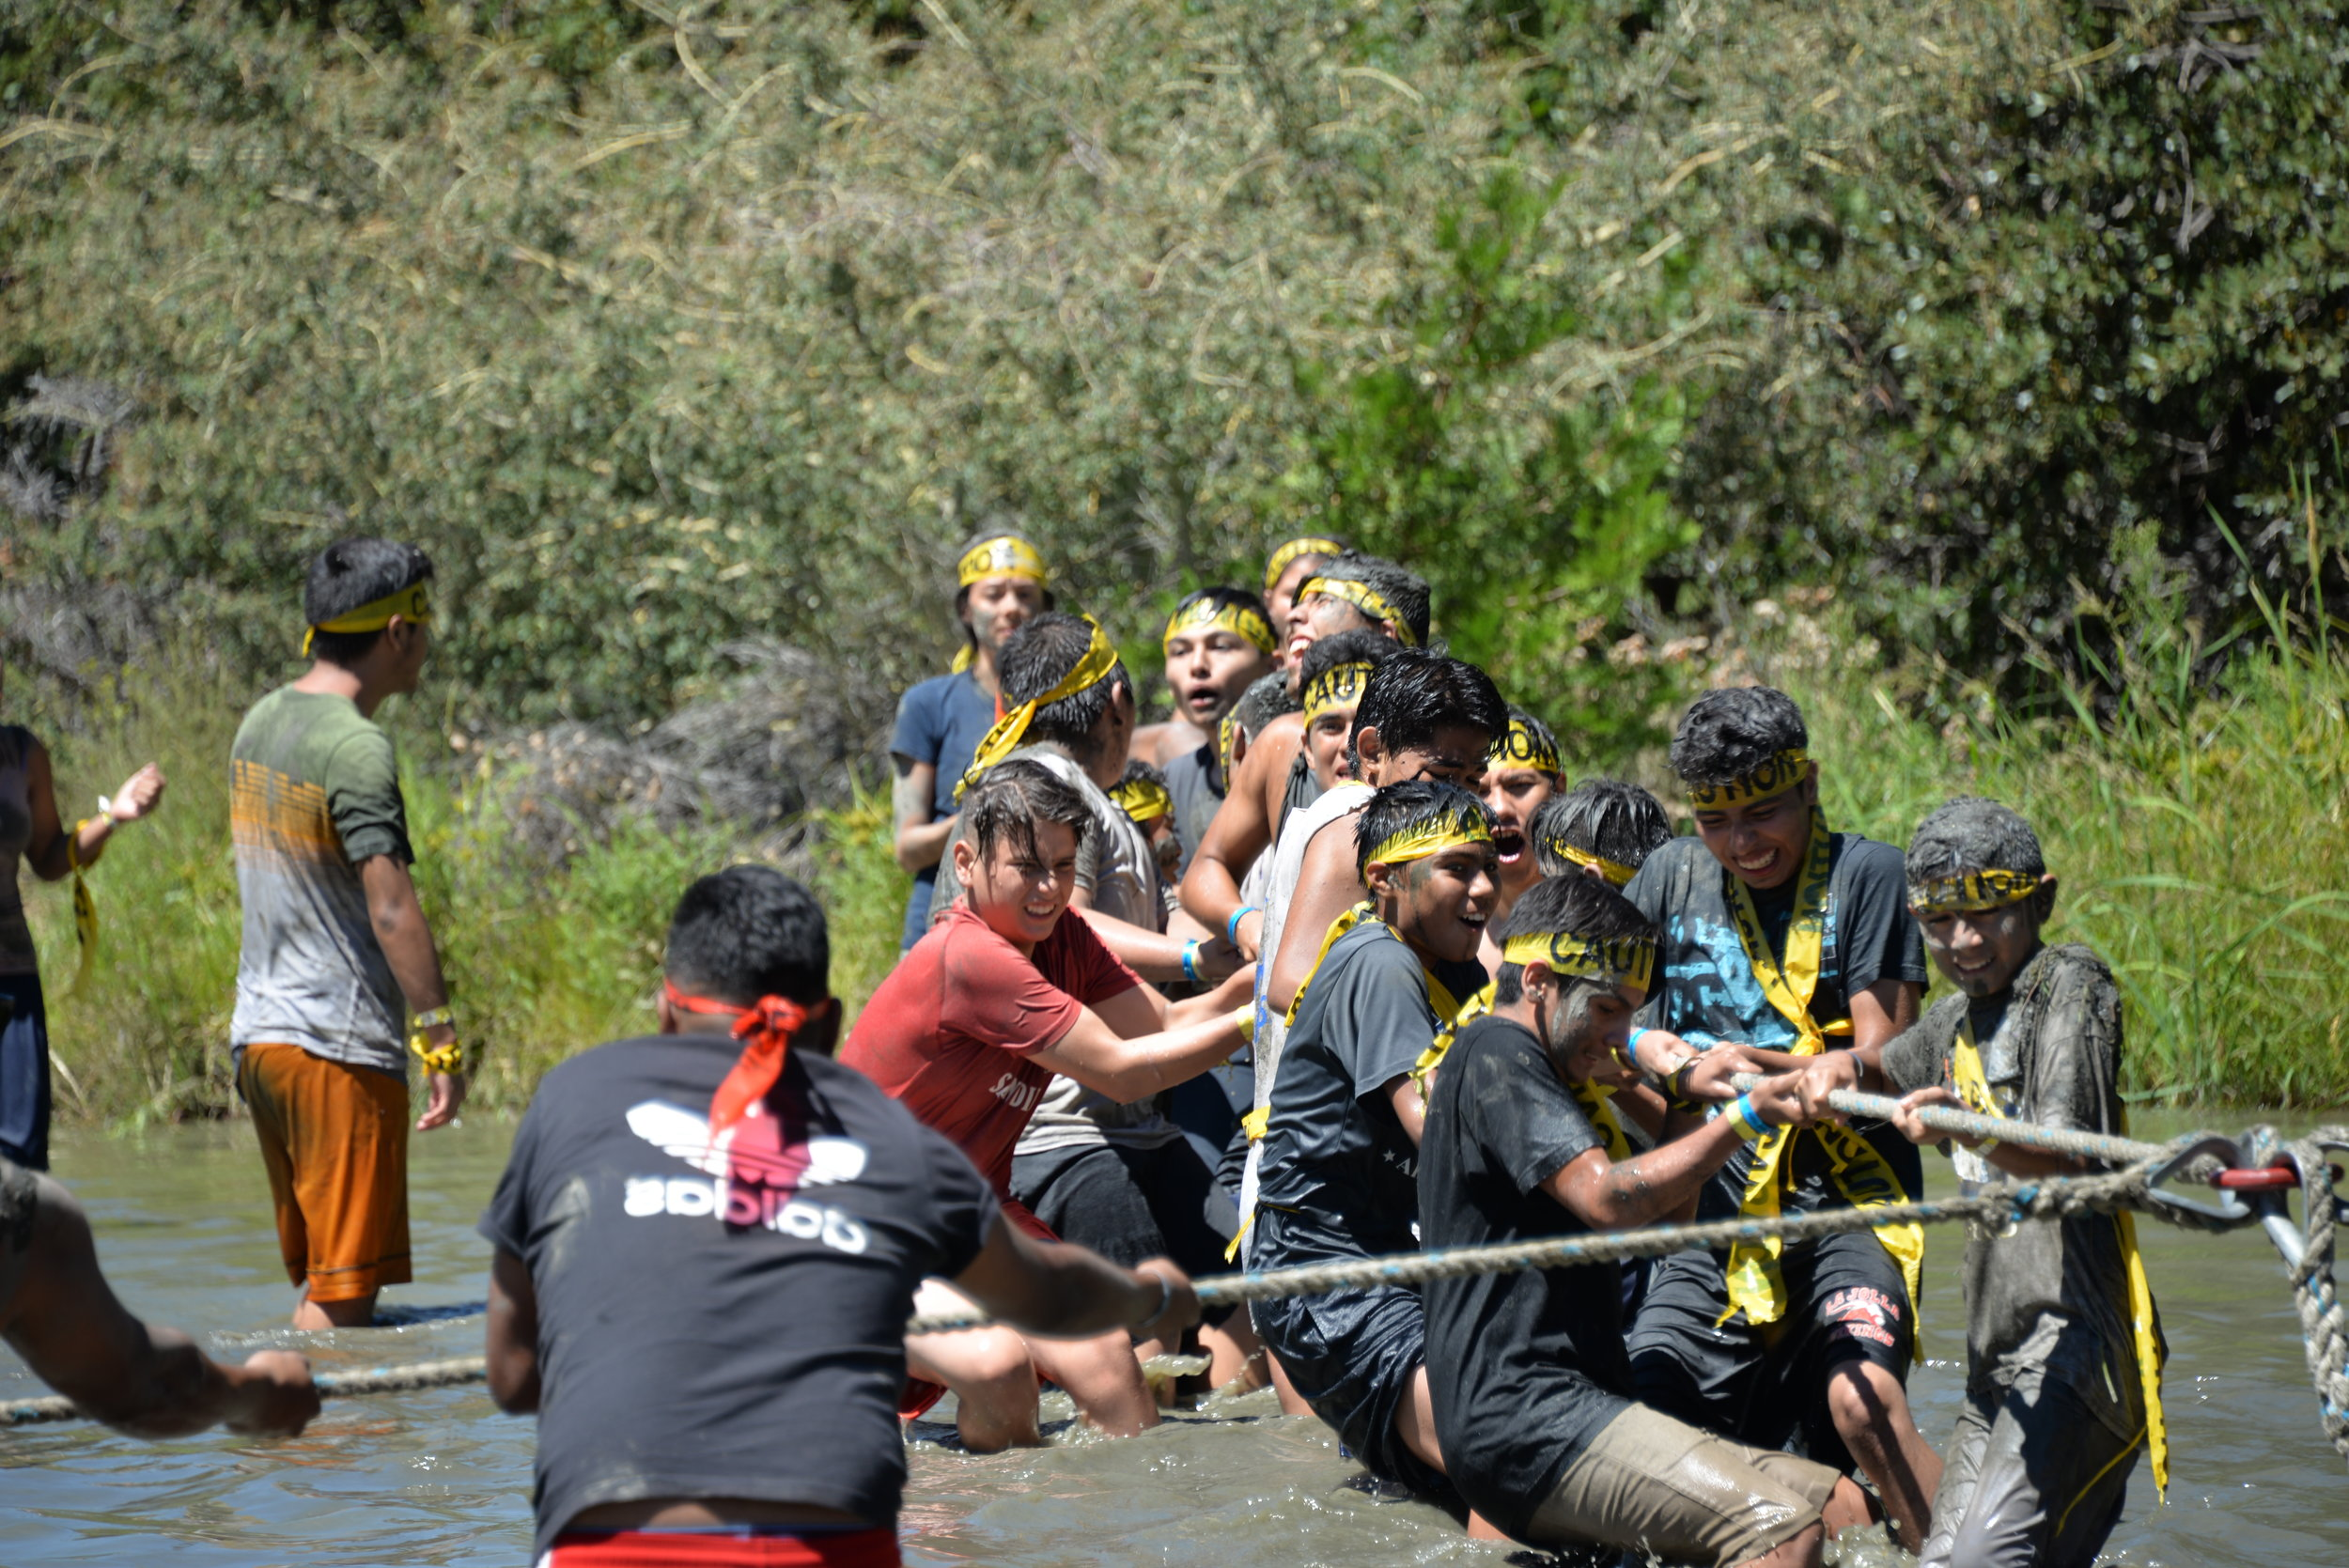 Team Building Exercise at Leadership Camp